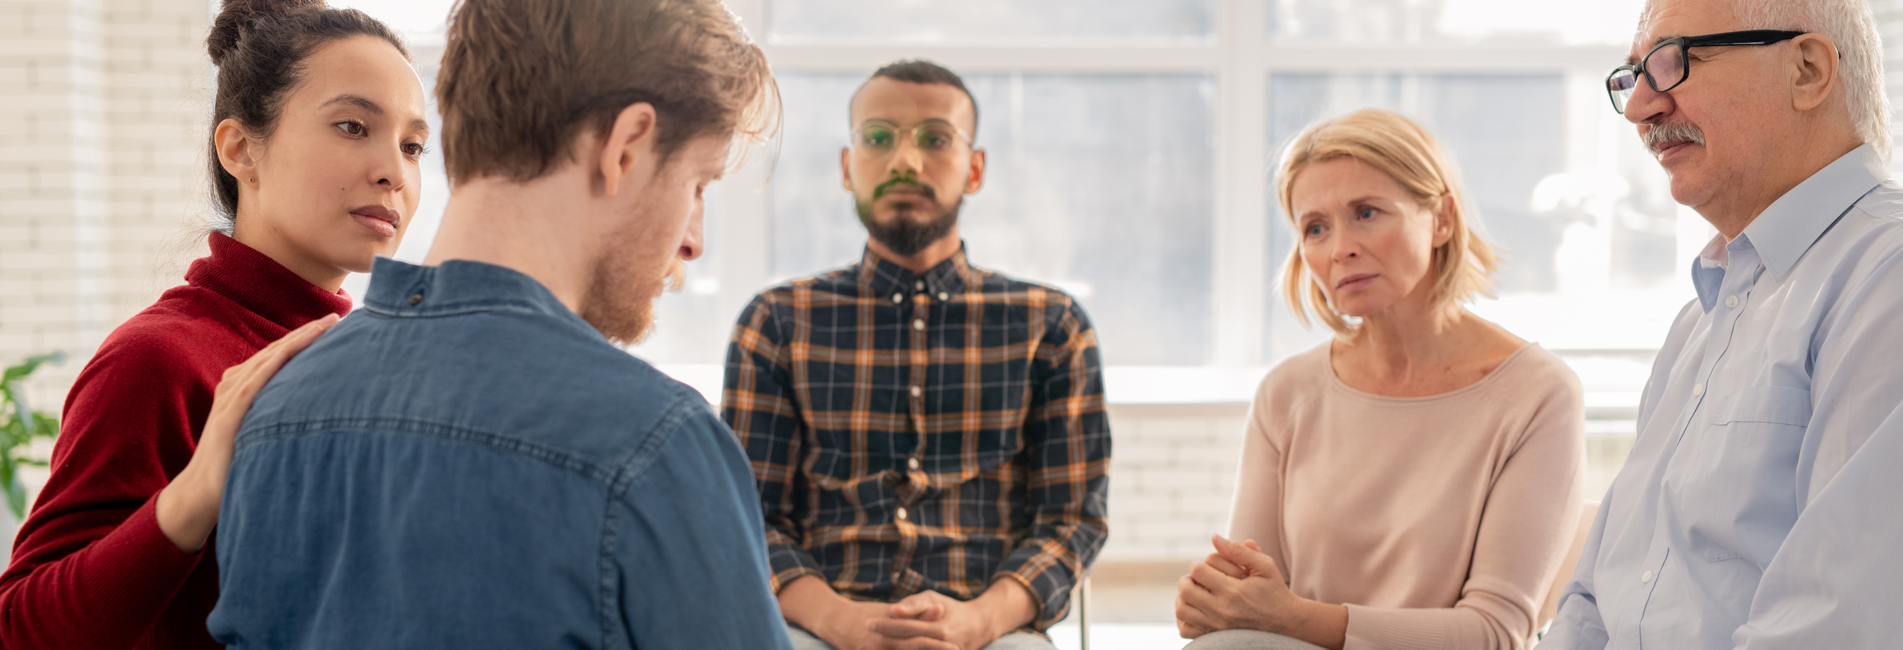 Alcohol Abuse in Costa Mesa CA - Resurgence - A group of individuals in rehab for alcohol abuse in Costa Mesa CA is discussing their own addiction experiences.